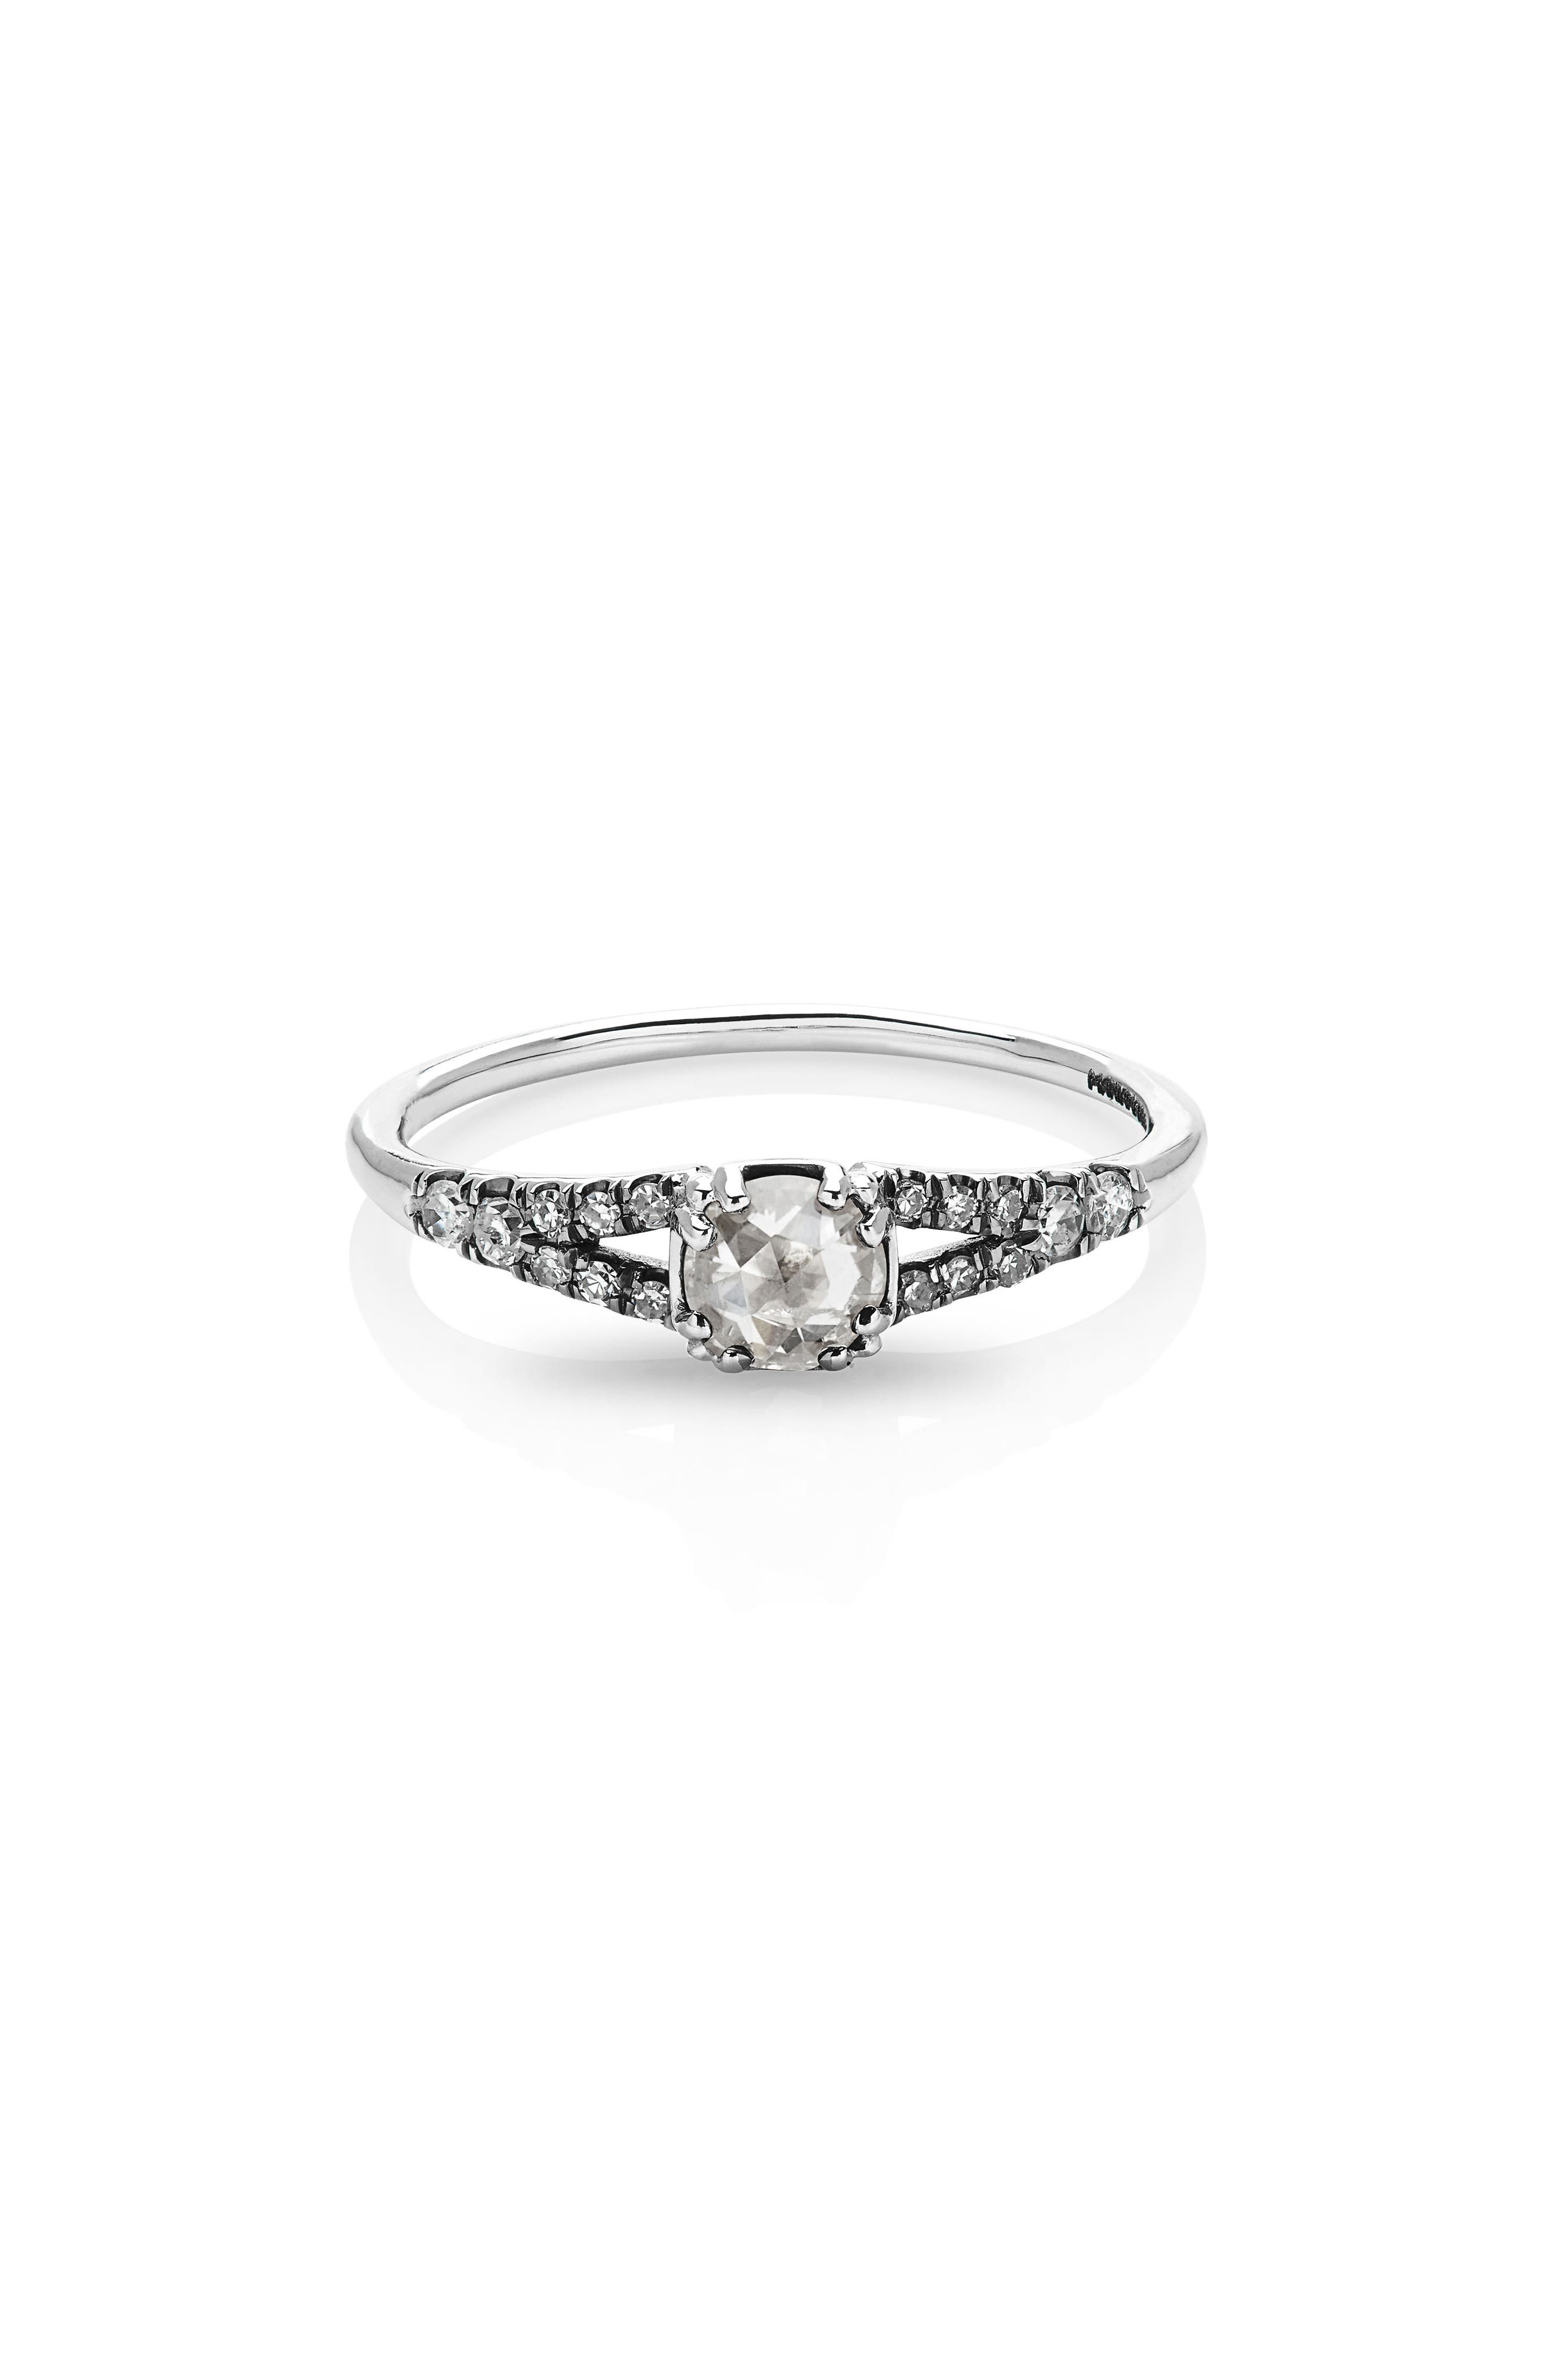 Devotion Solitaire Diamond Ring,                         Main,                         color, WHITE GOLD